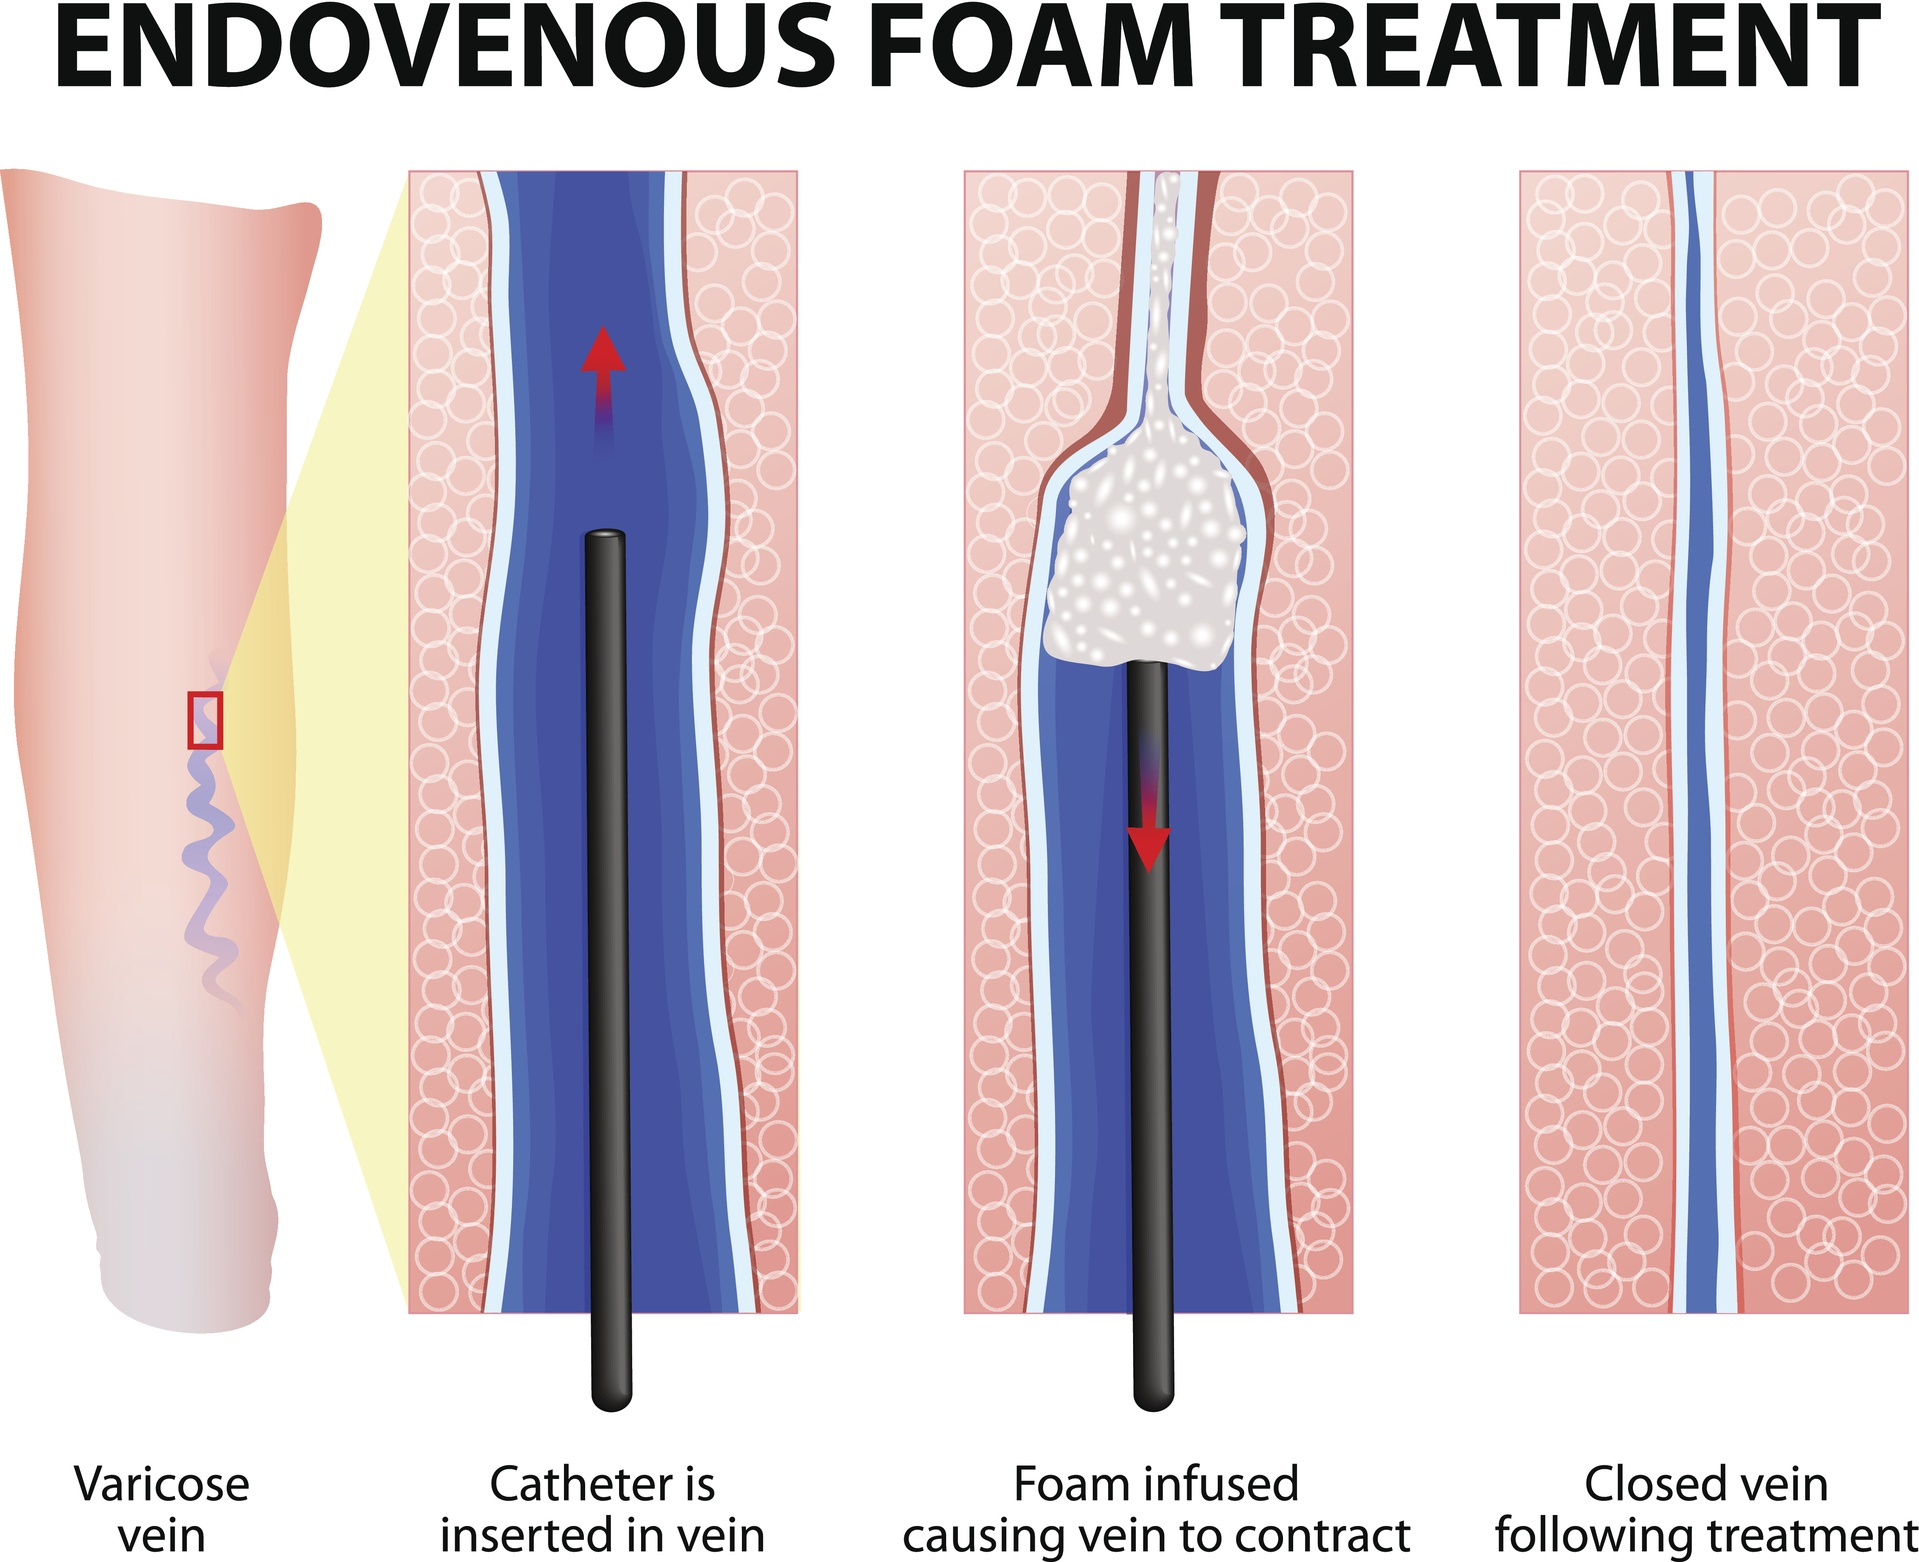 Foam Sclerotherapy - A Vein Treatment Option